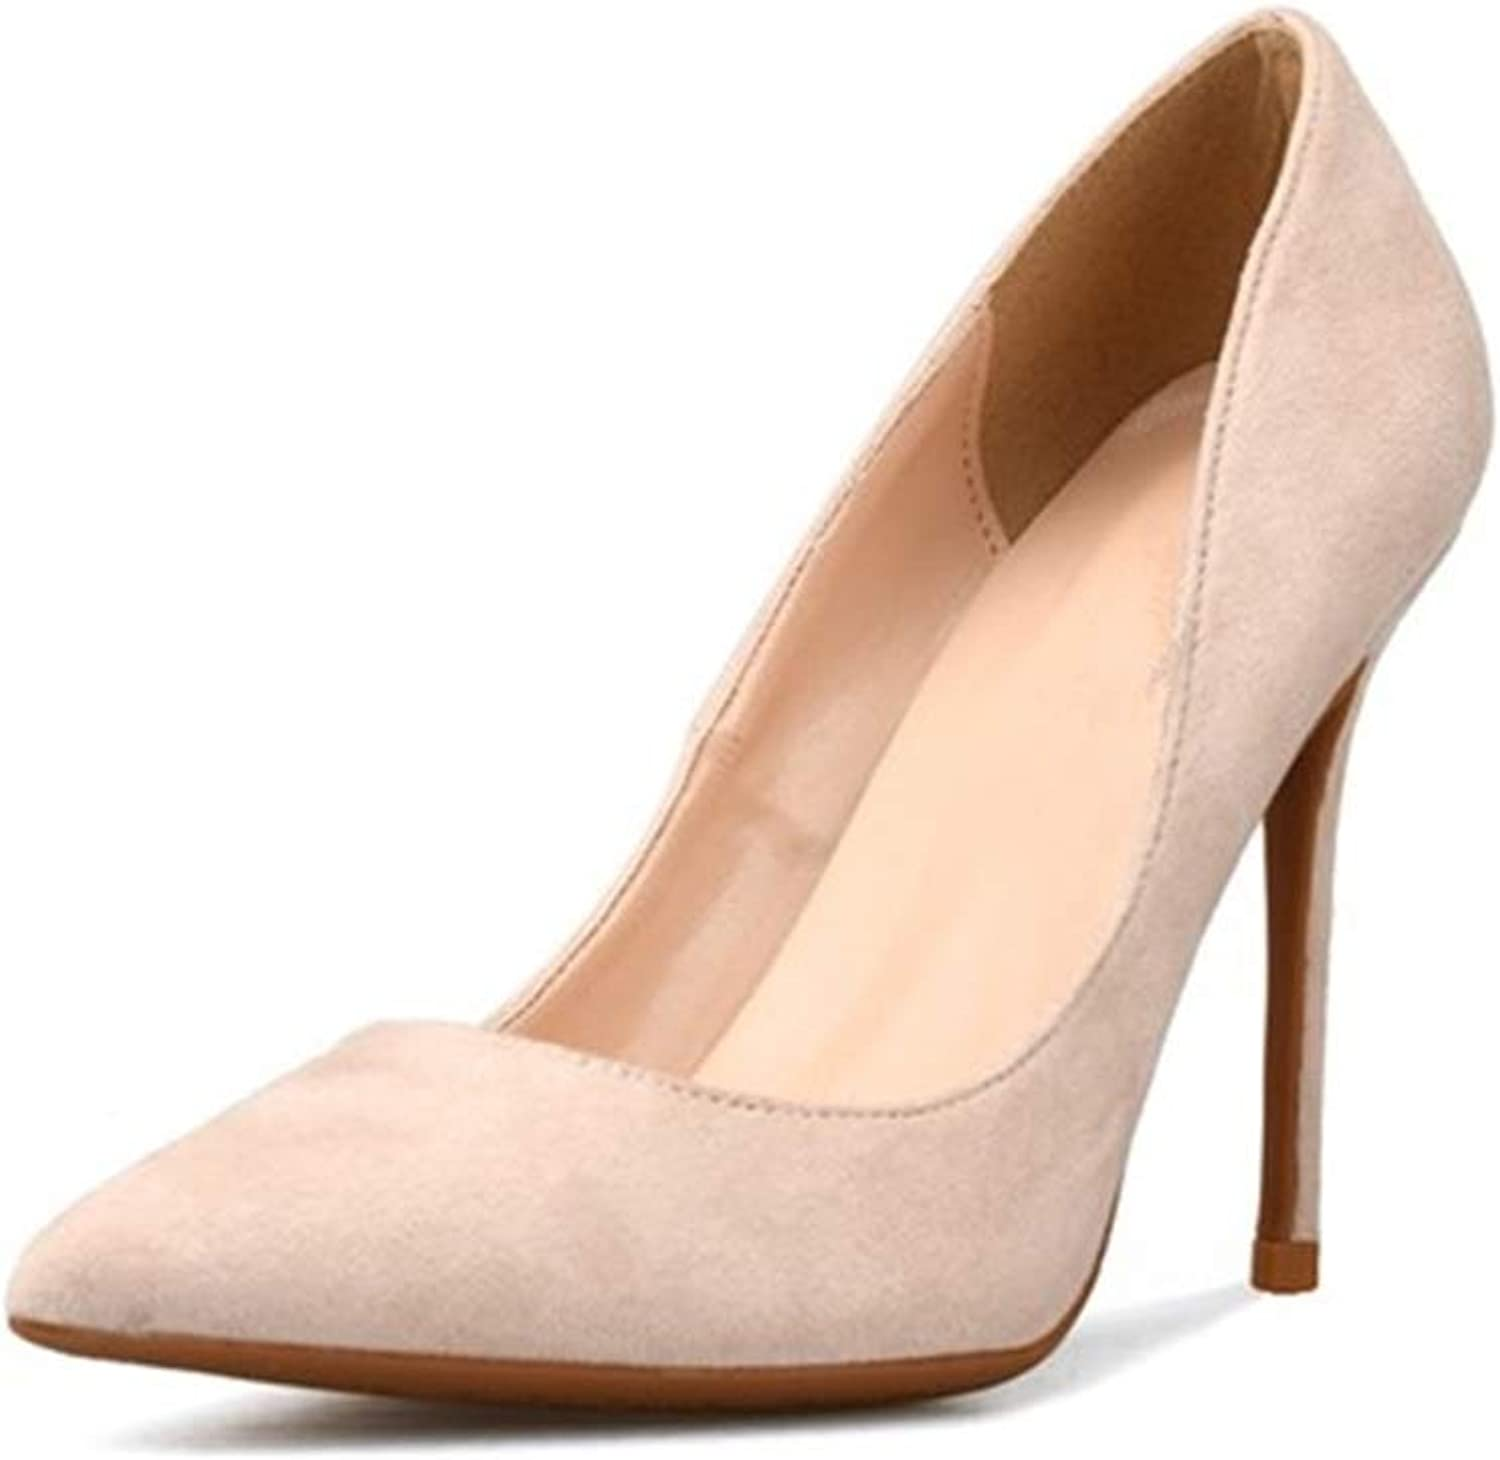 shoes Fashion Lady High Stiletto Heels D'Orsay Pumps for Women Faux Suede Leather Pointed Toe Lined Dress shoes  Pointed, Classic Slip On Dress Pumps Comfortable